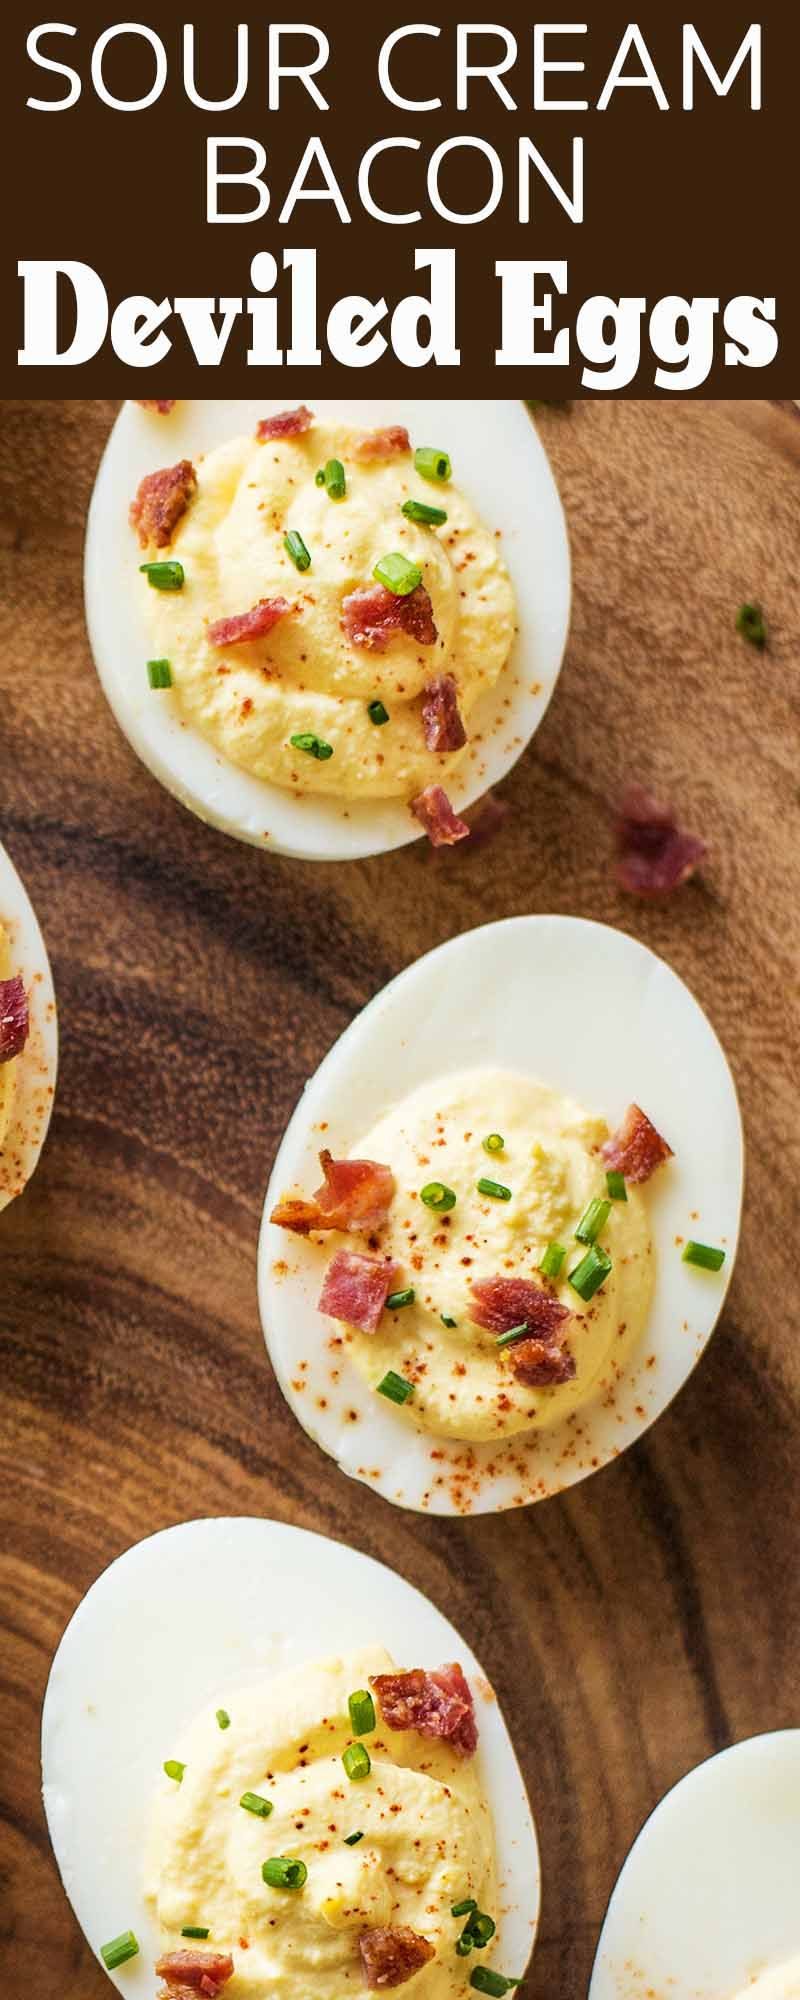 Sour Cream and Bacon Deviled Eggs Recipe | SimplyRecipes.com